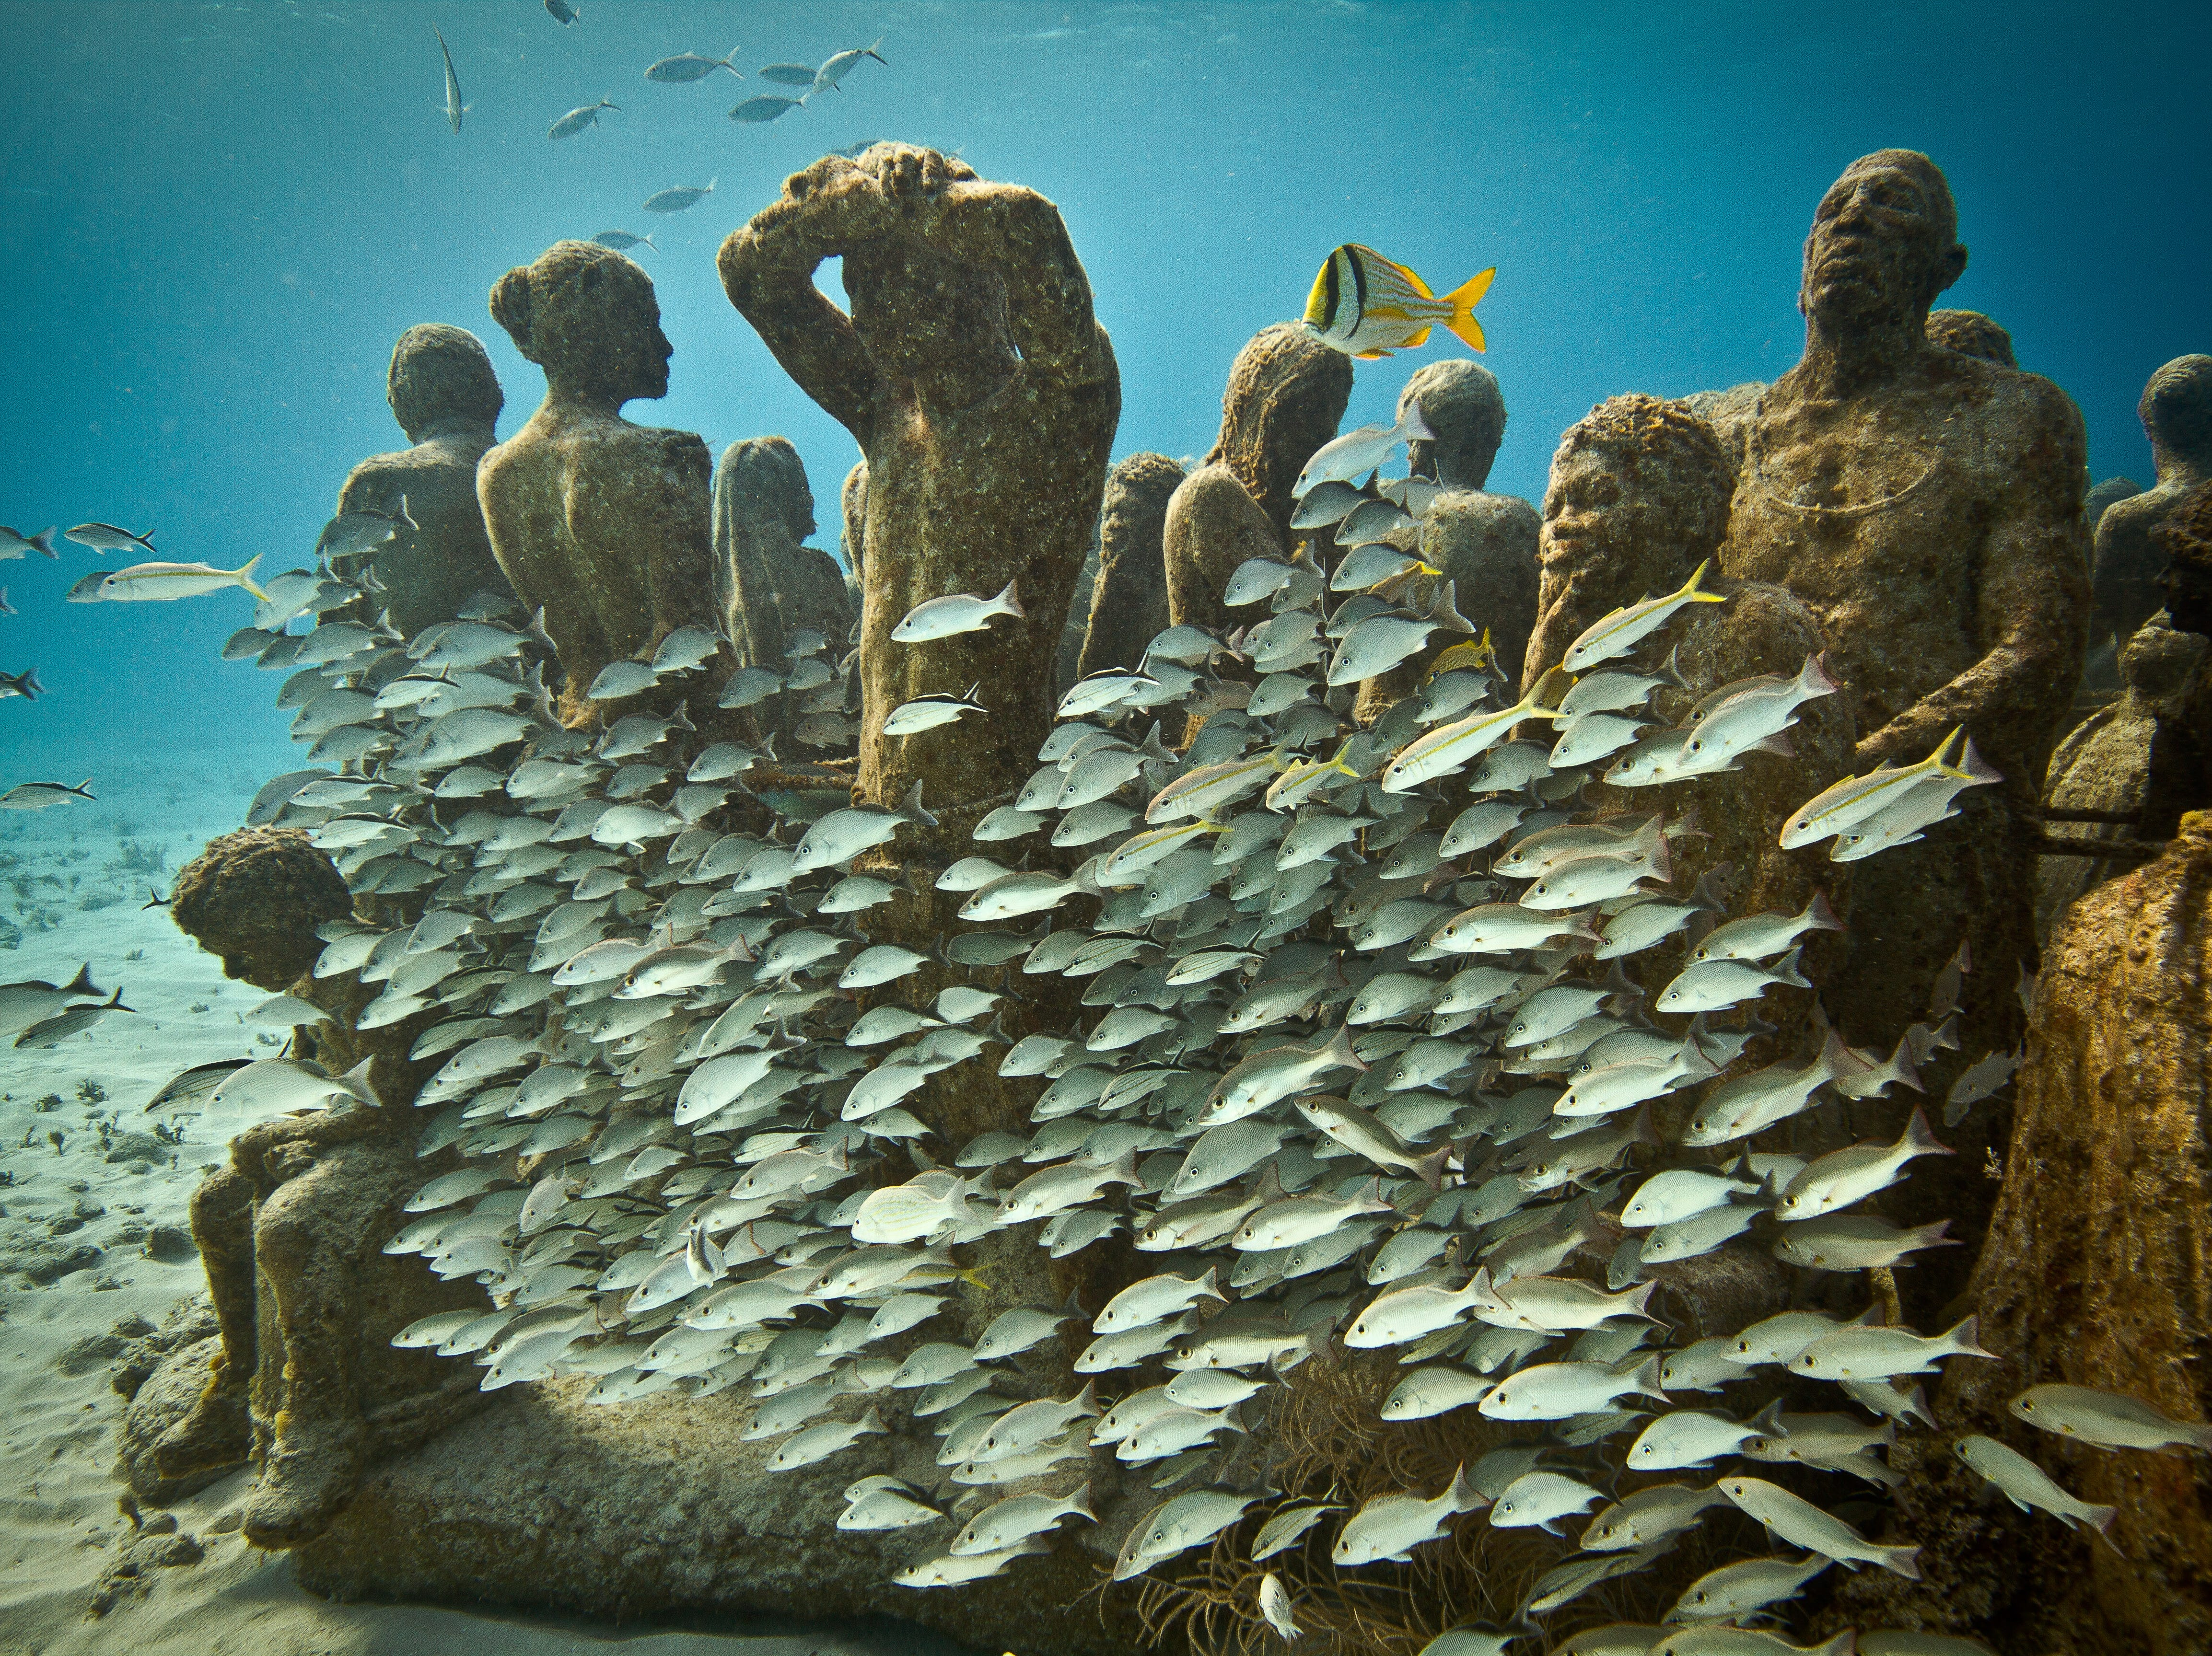 This is the Underwater Museum in Cancun, one of Travelzoo's top destinations for January.